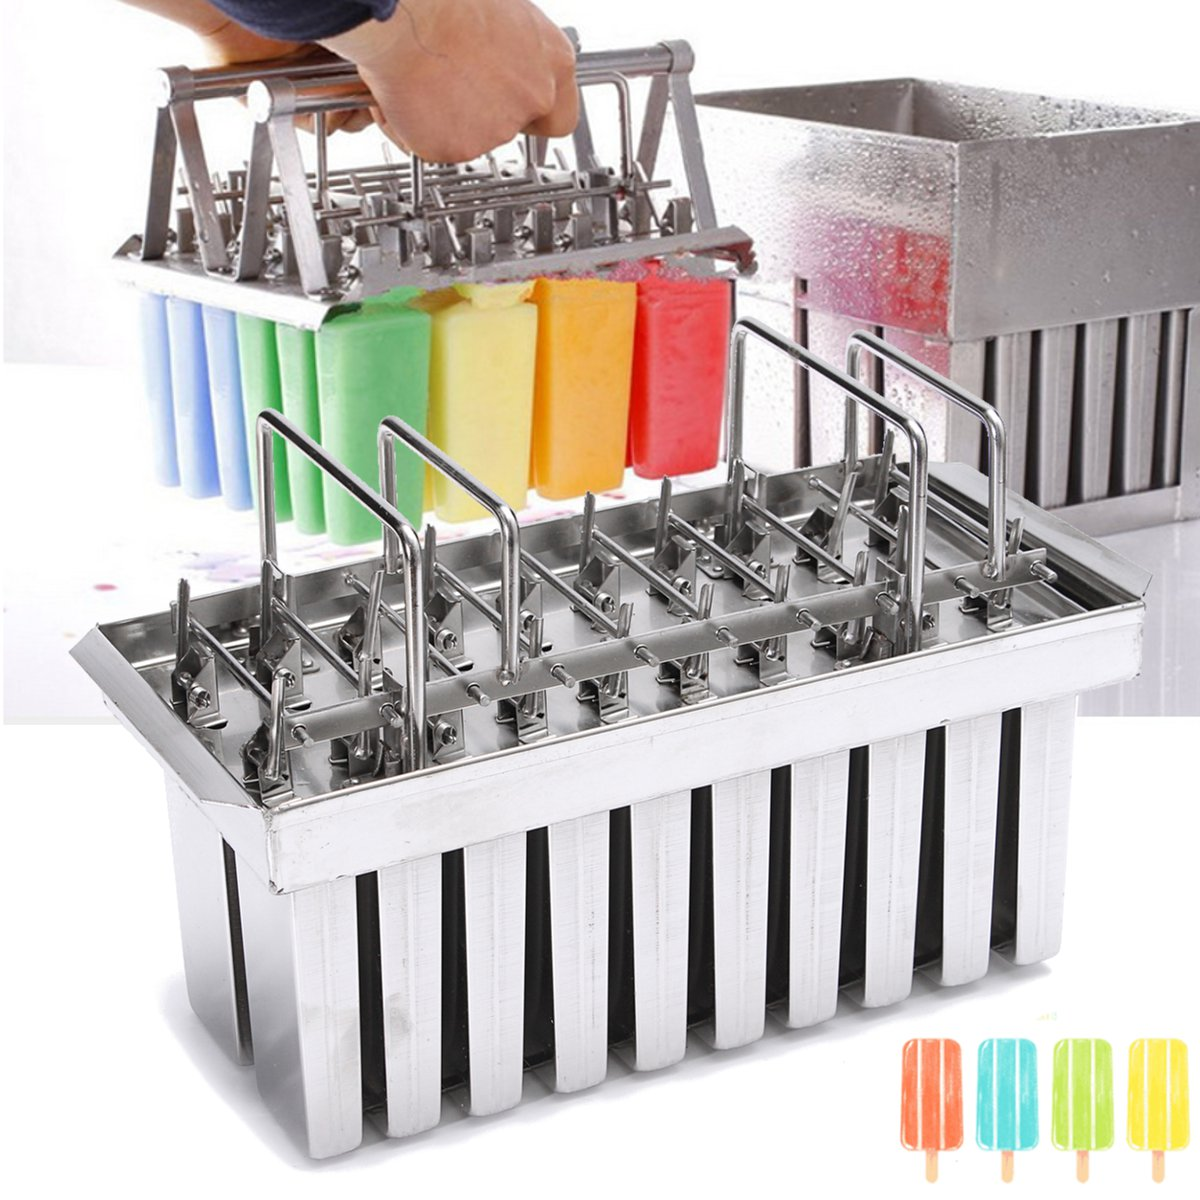 20 Cells DIY Popsicle Molds Ice Cream Makers Kitchen Tools Reusable Froze Moulds Stainless Steel Ice Lolly Mould Maker